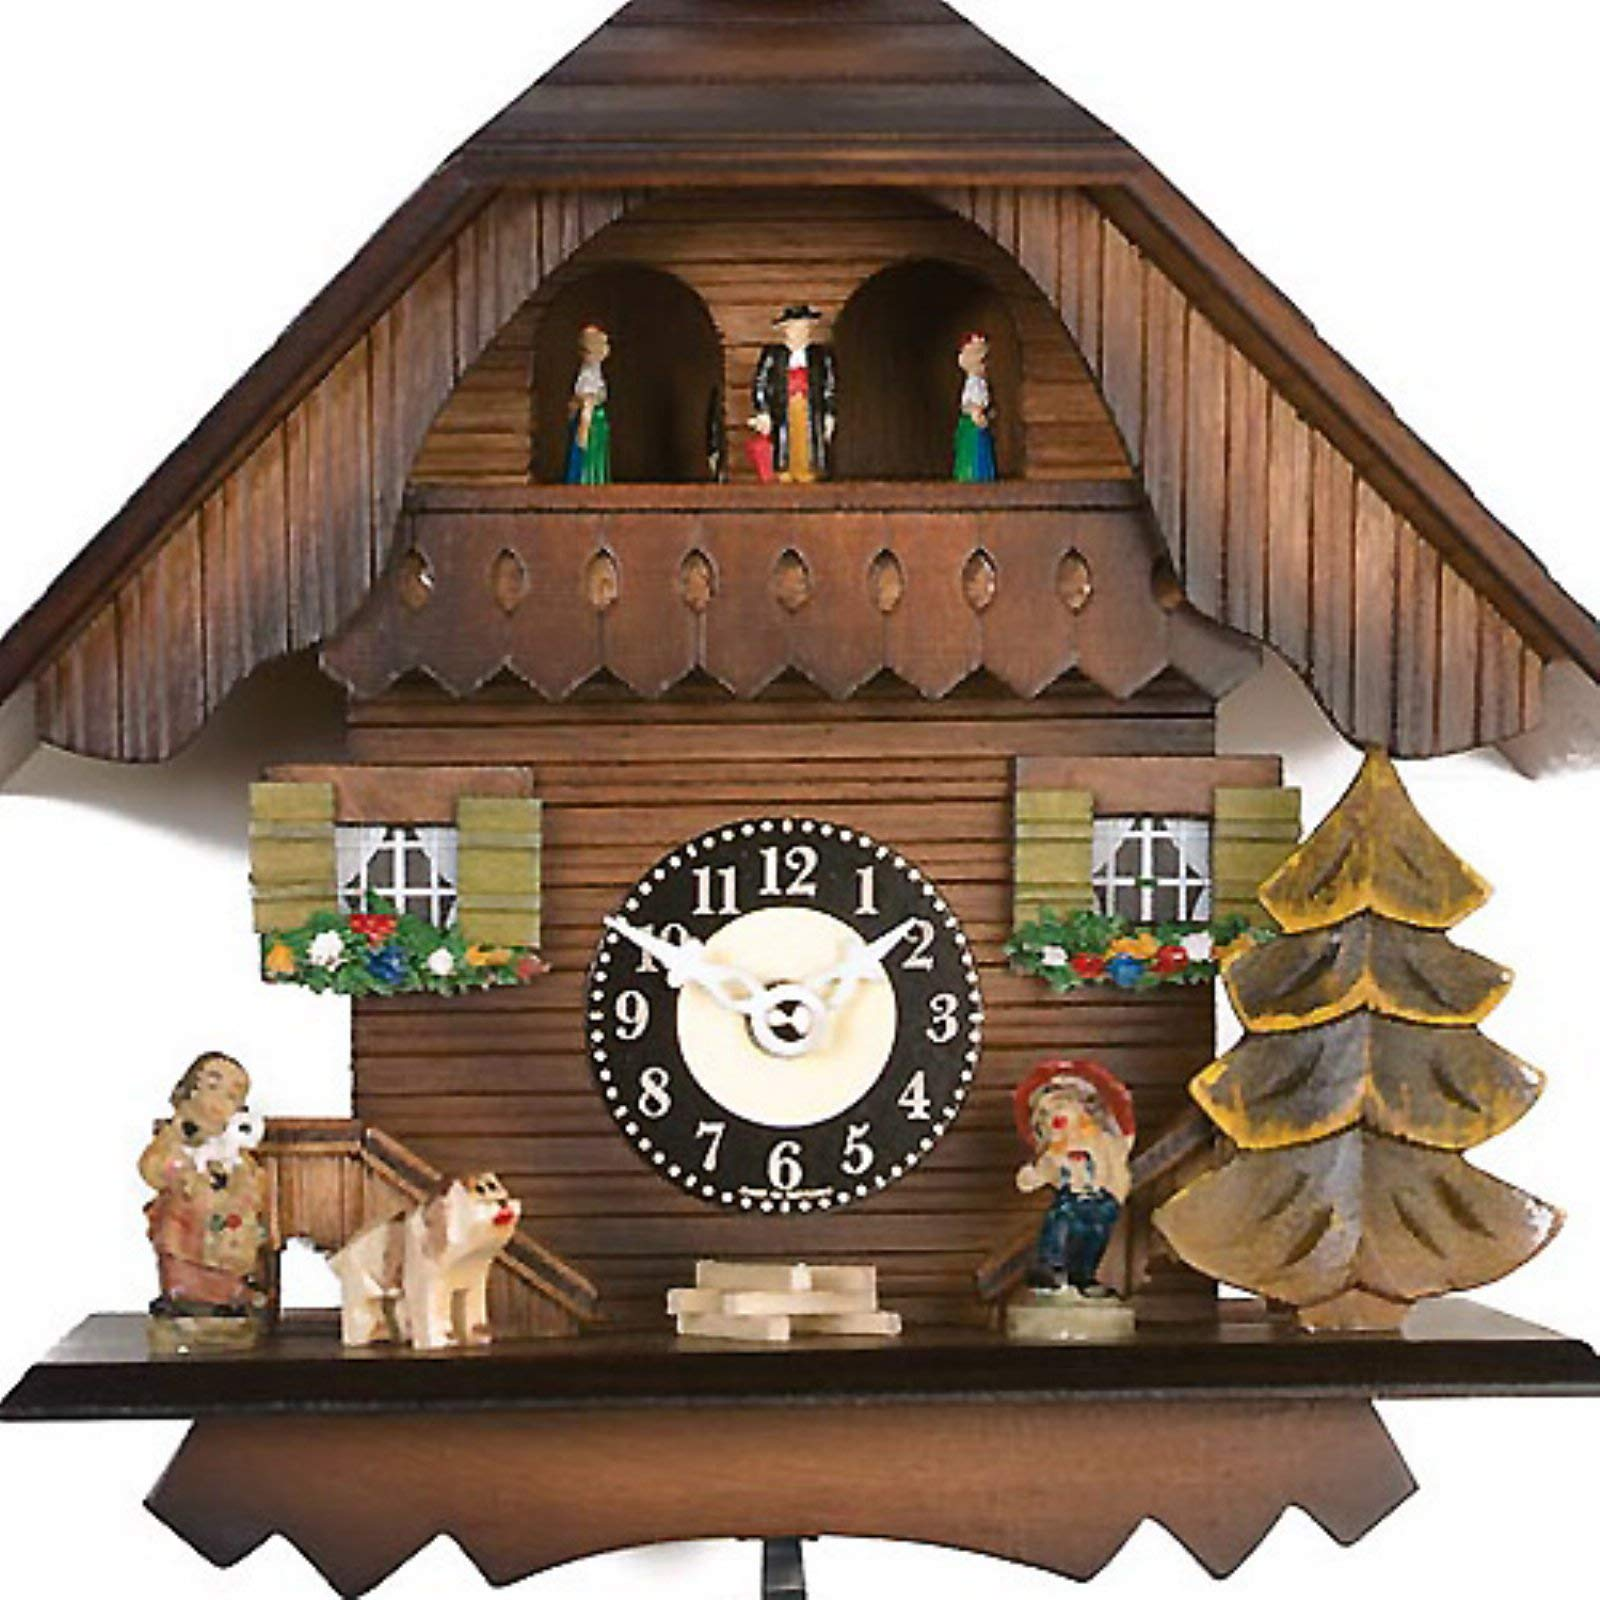 River City Clocks Quartz Cuckoo Clock - Painted Chalet with Dancers - Wesminster Chime or Cuckoo Sound - 7 Inches Tall - Model # 83-07QPT by River City Clocks